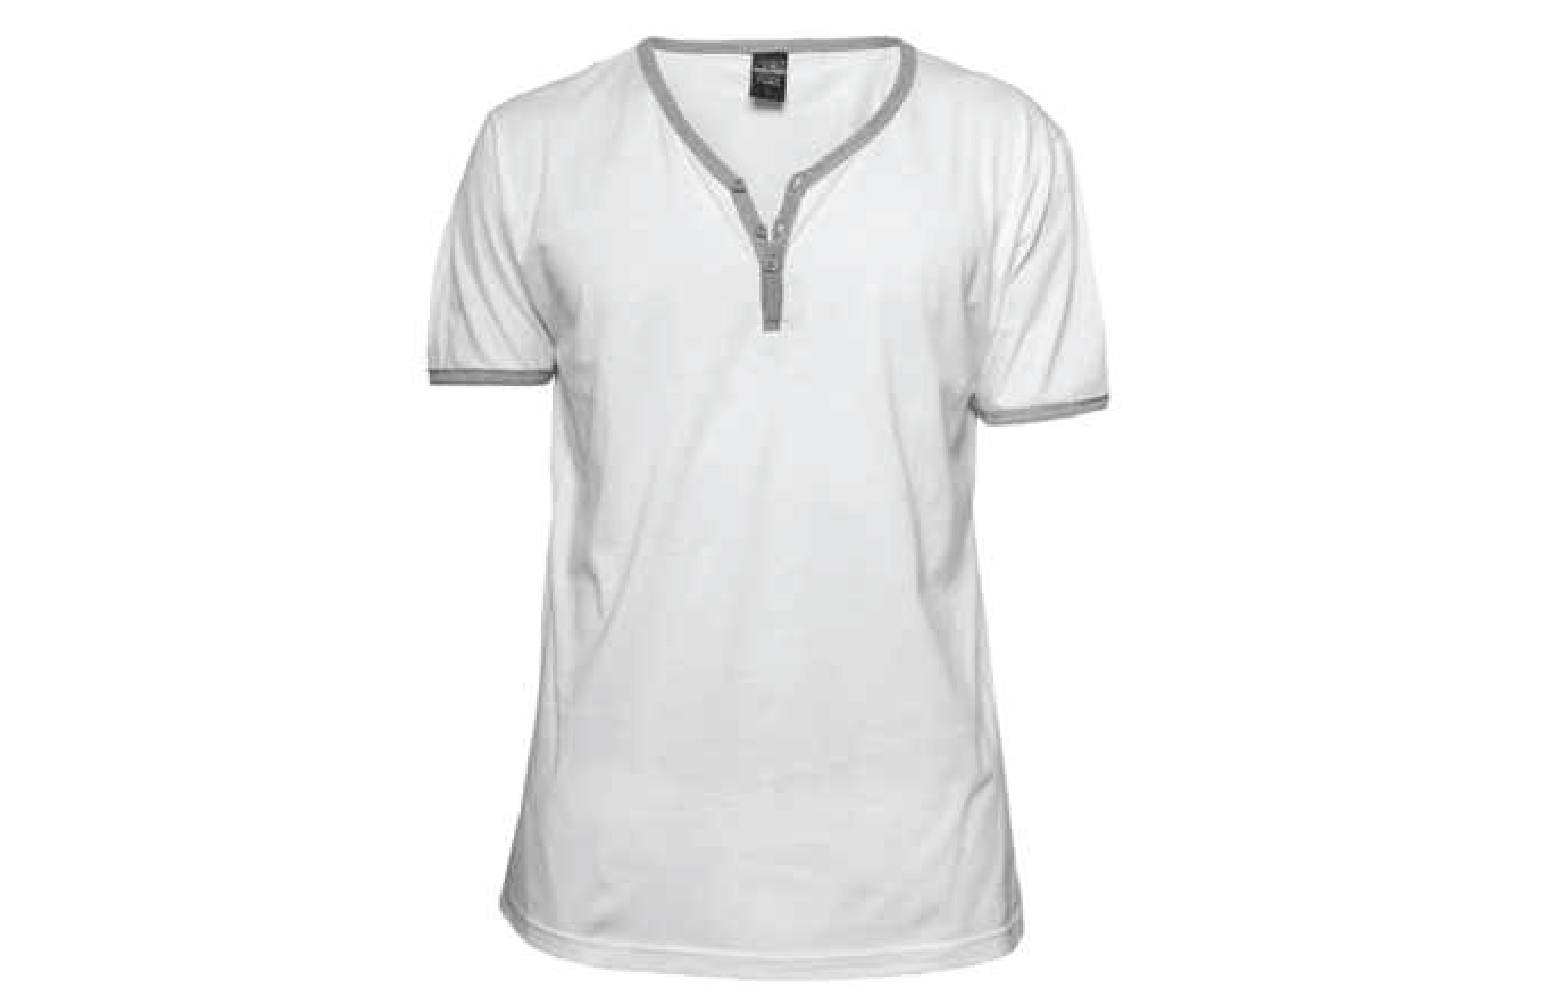 Y Neck Style T Shirt